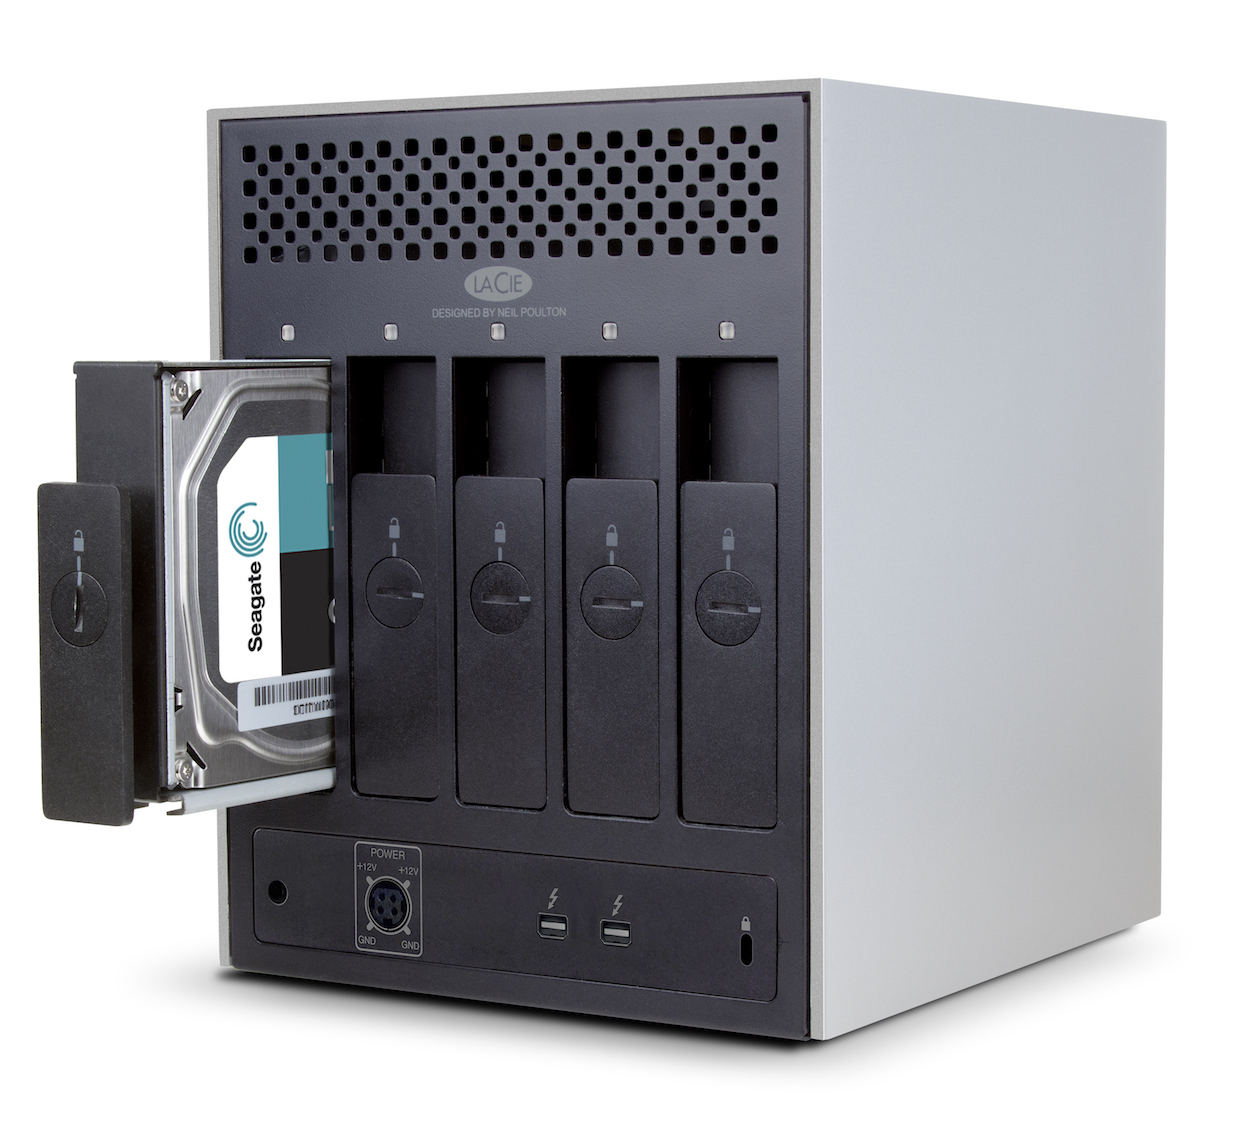 5 Hot swappable drives. If one drive crashes, simply replace the drive - no data will be lost